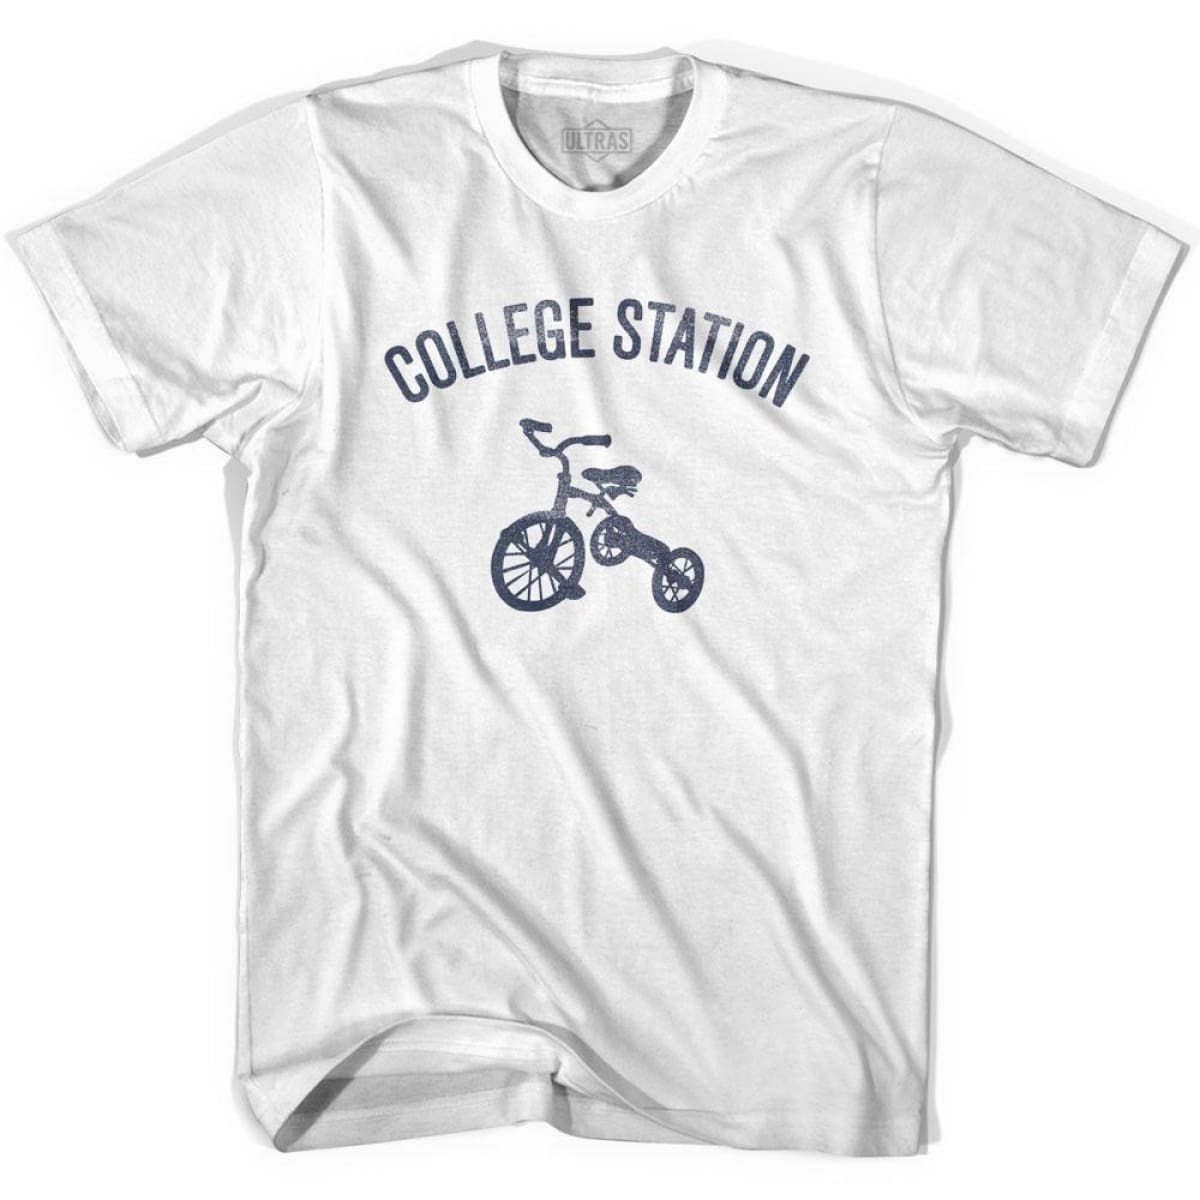 College Station City Tricycle Youth Cotton T-shirt - Tricycle City